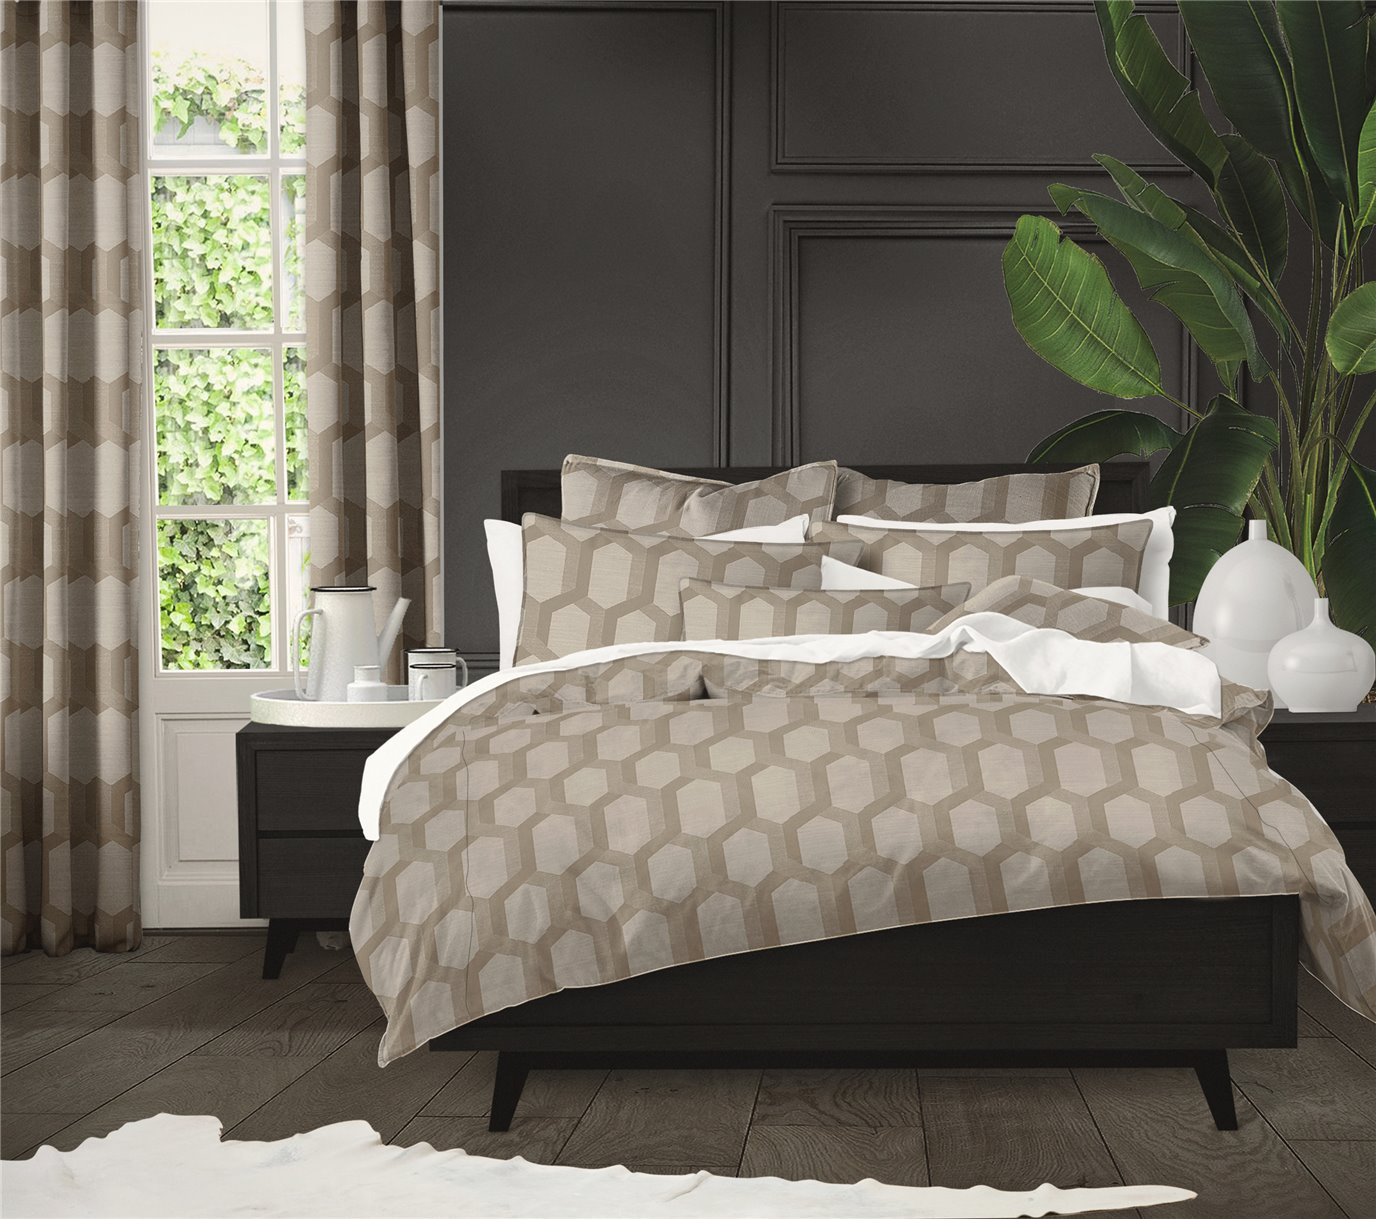 Maidstone Taupe Duvet Cover Set - King